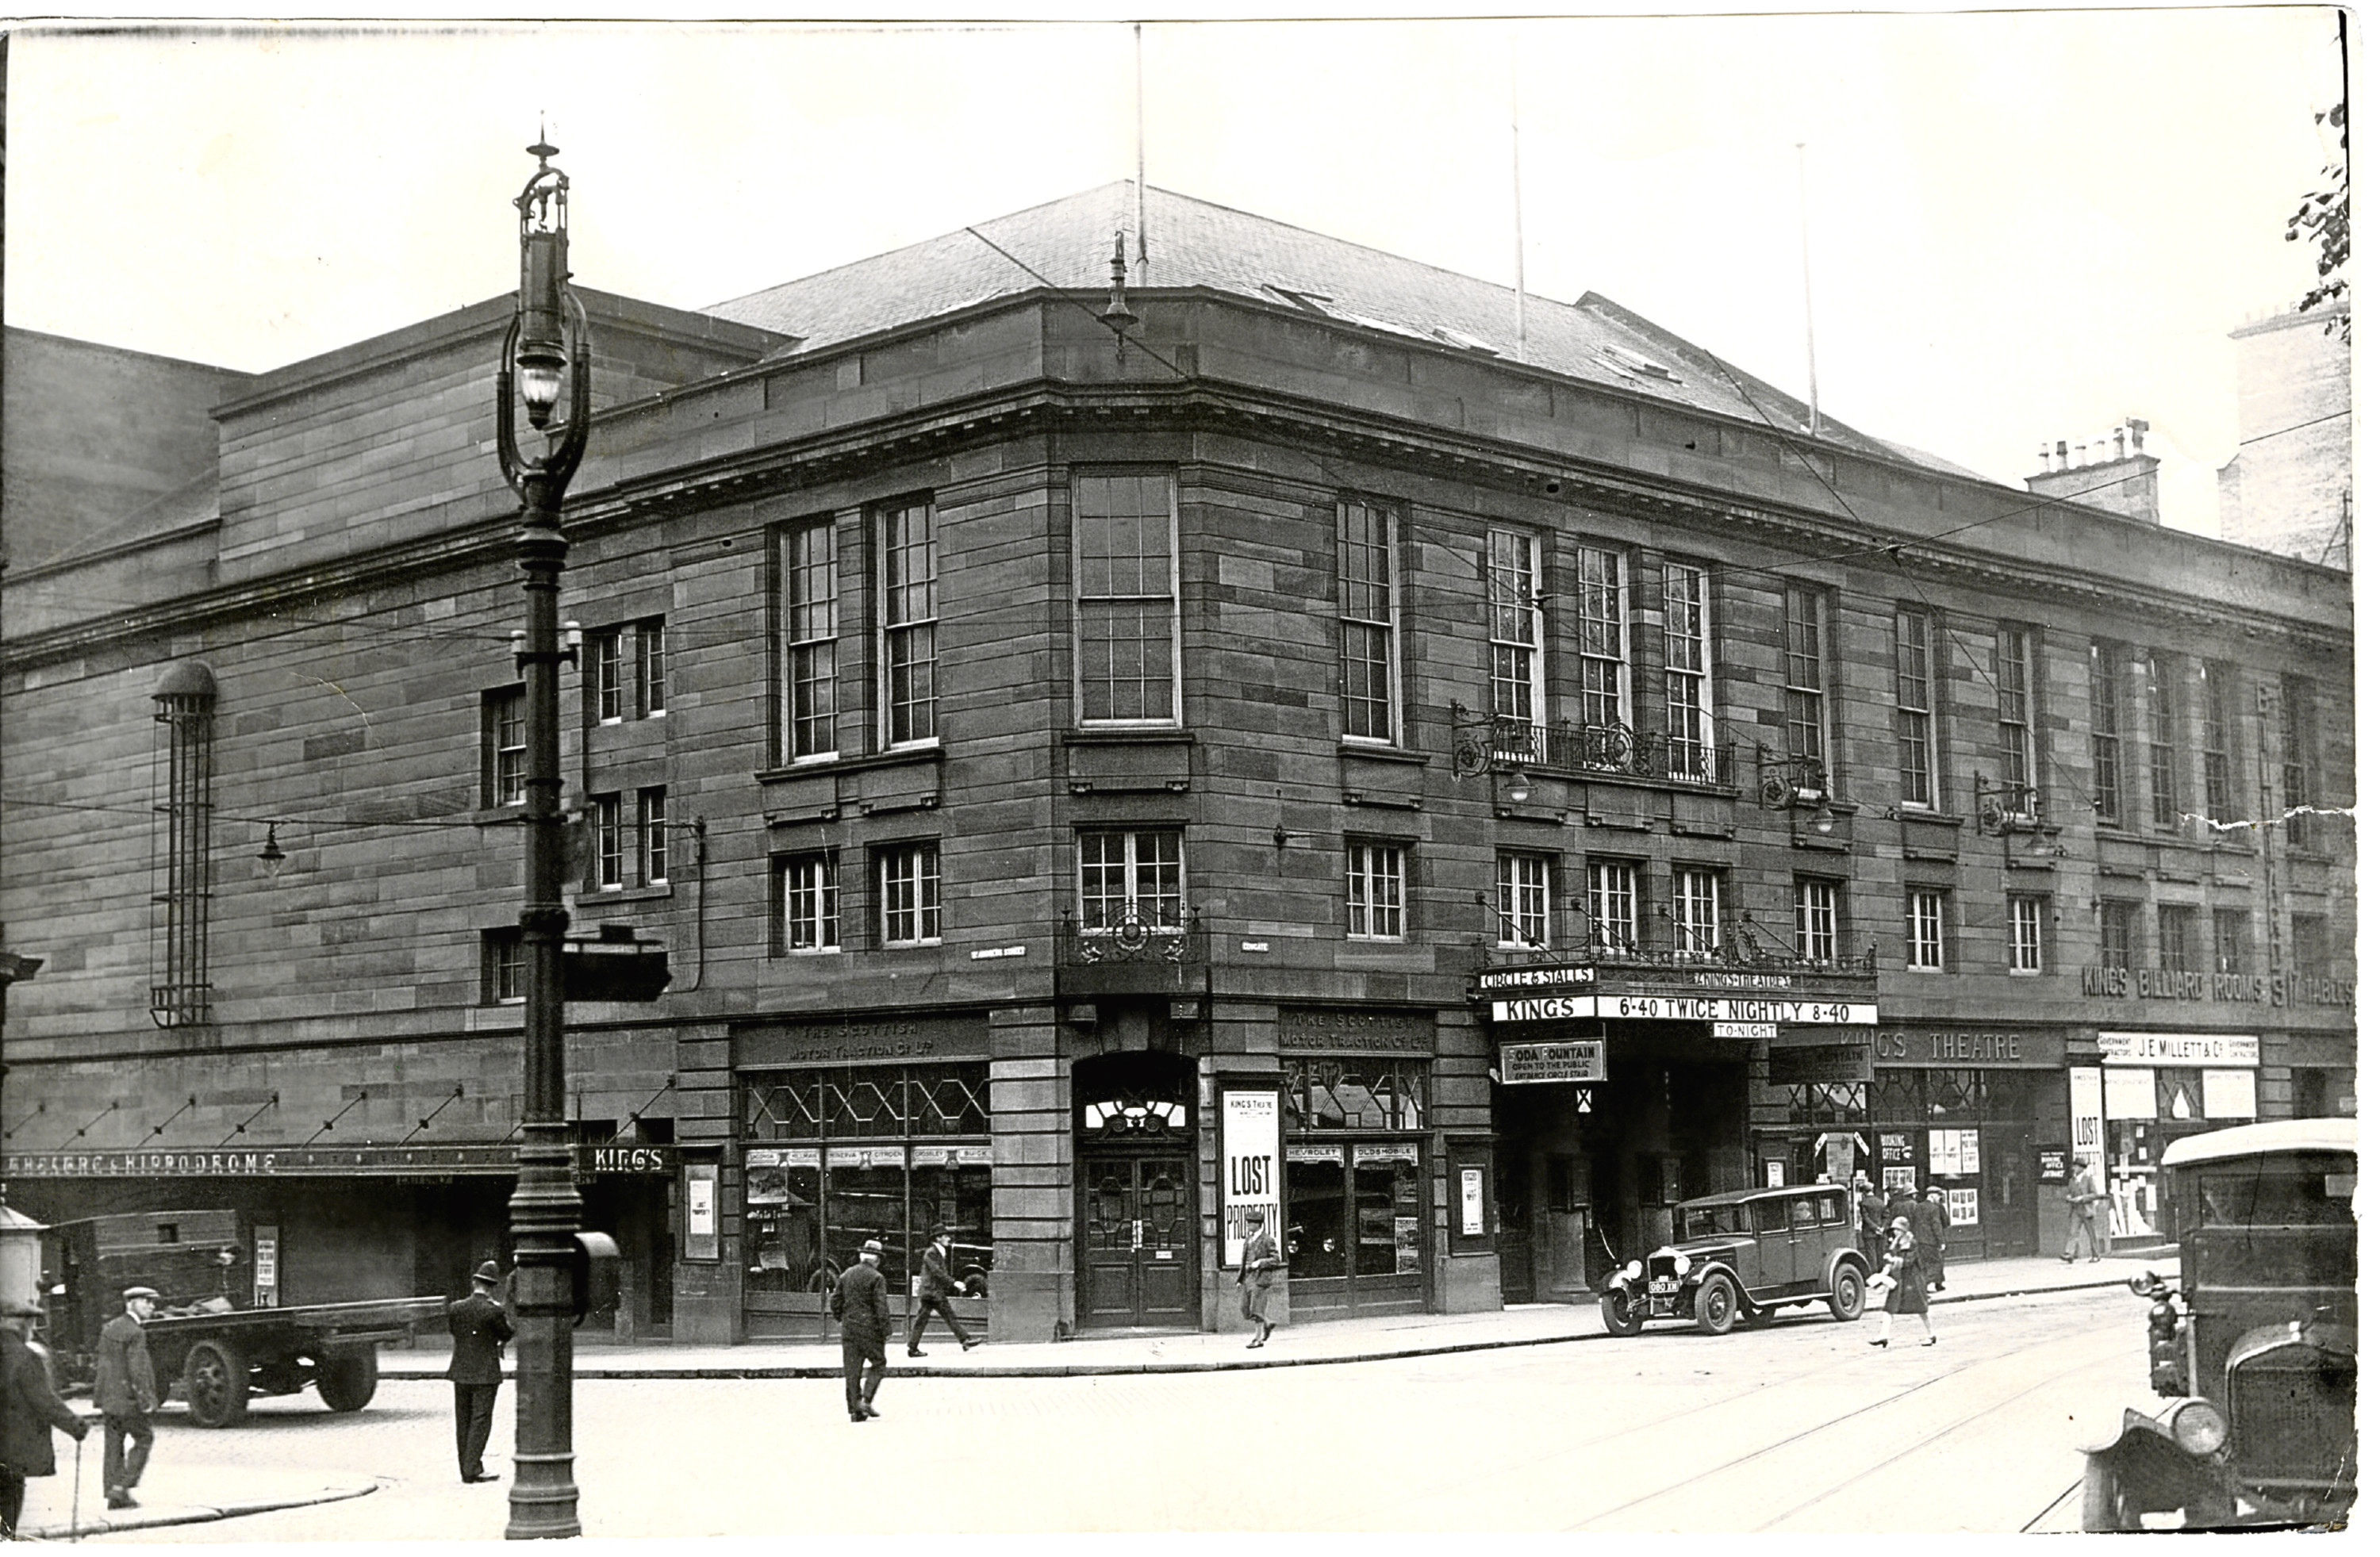 The King's Theatre in its 1925 heyday.